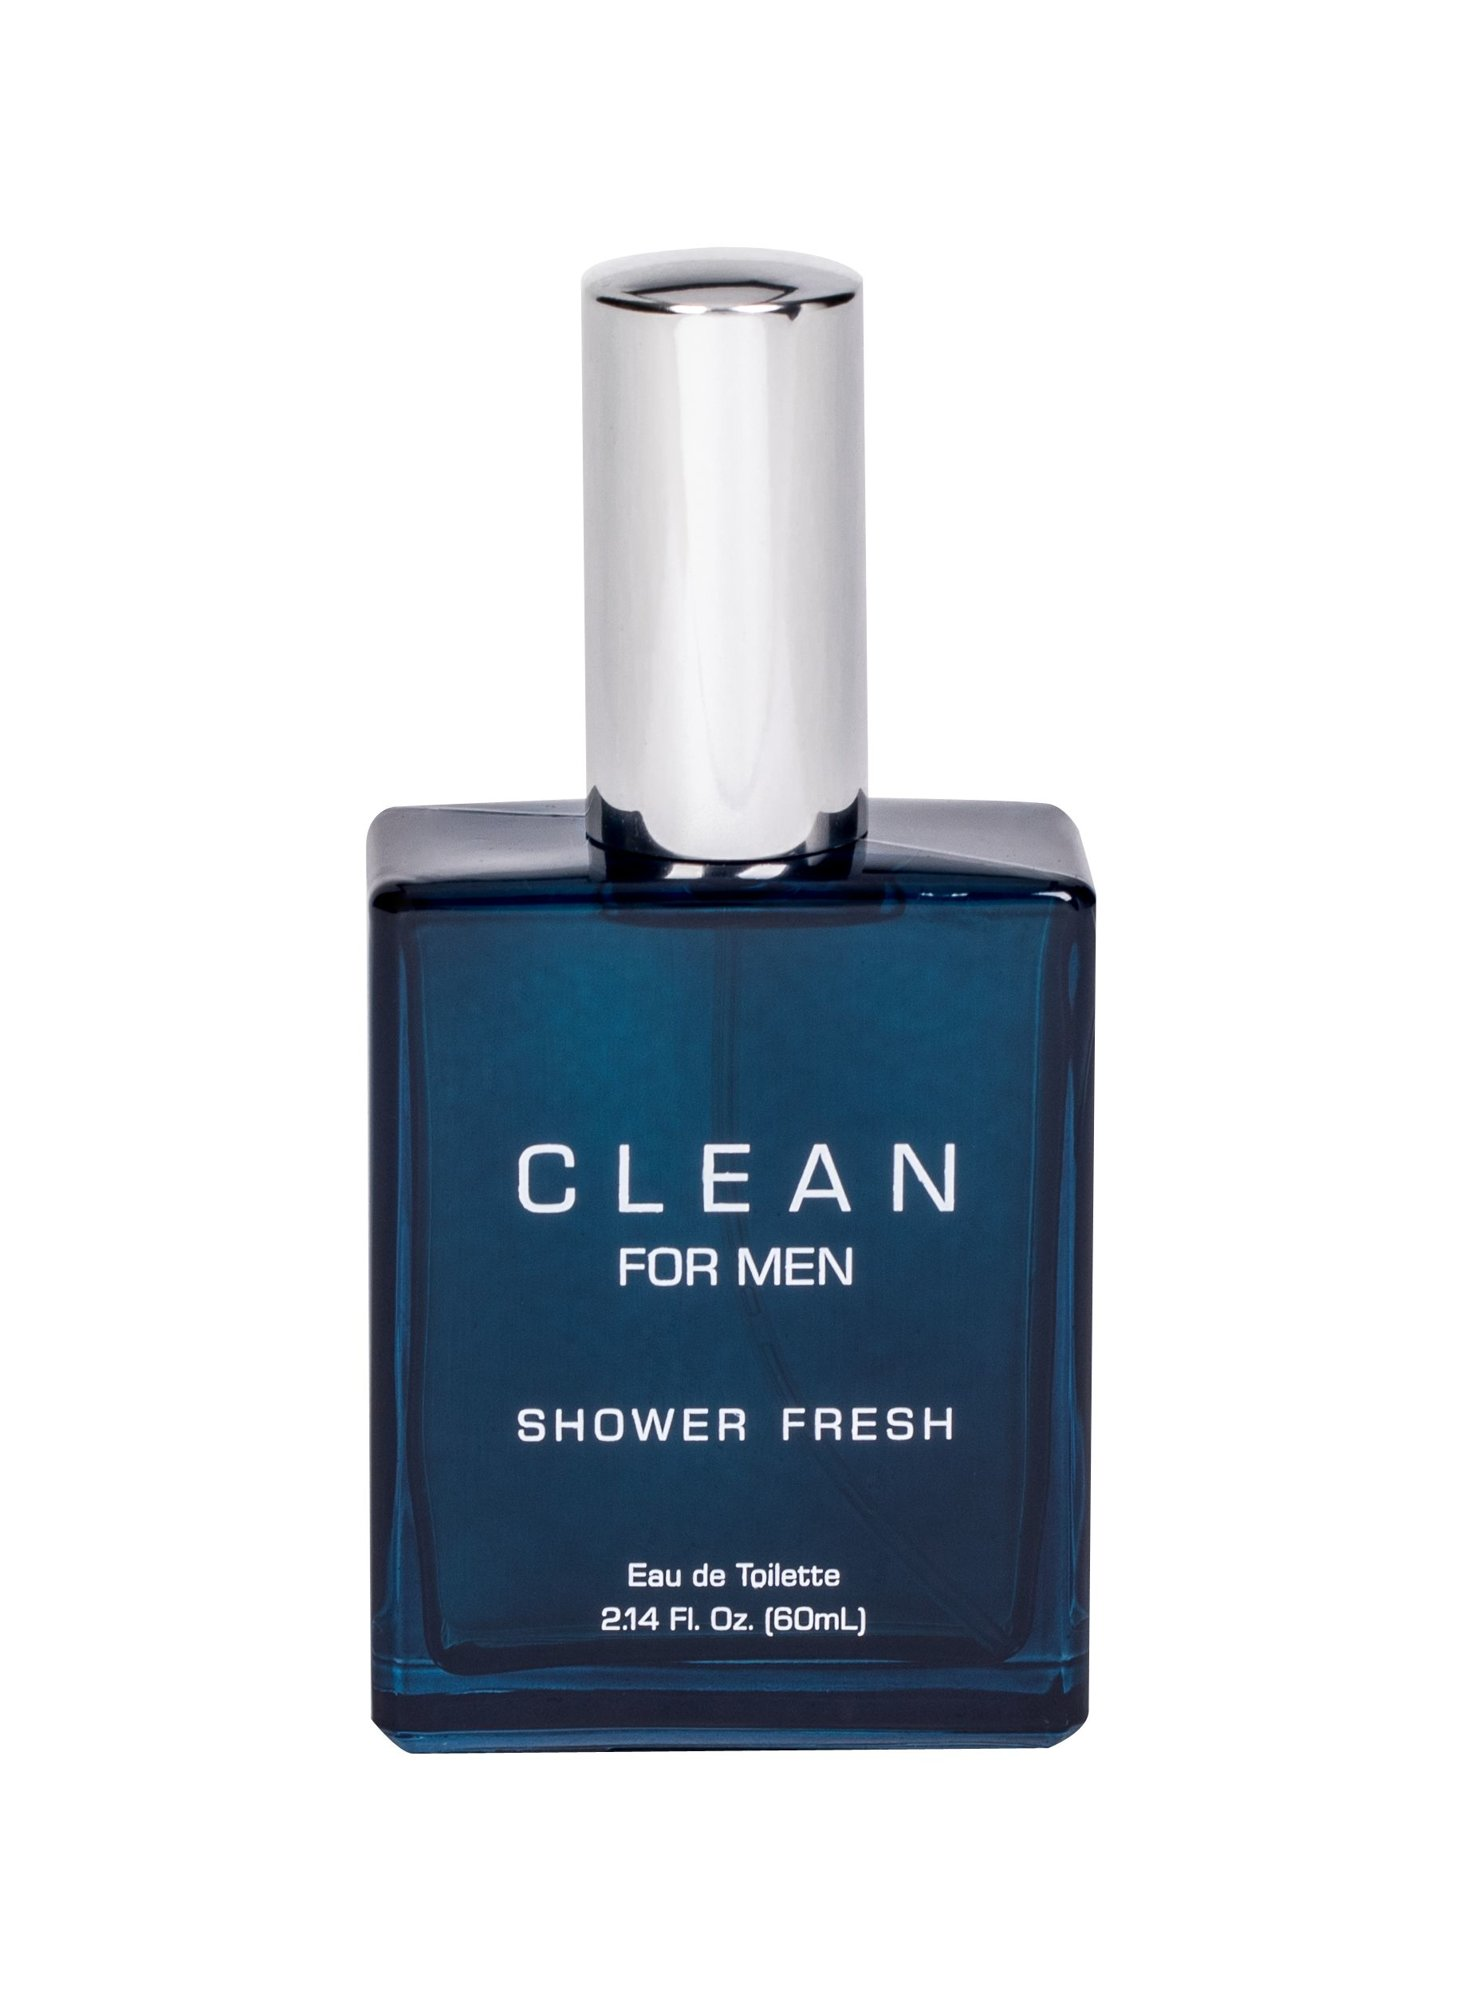 Clean For Men Eau de Toilette 60ml